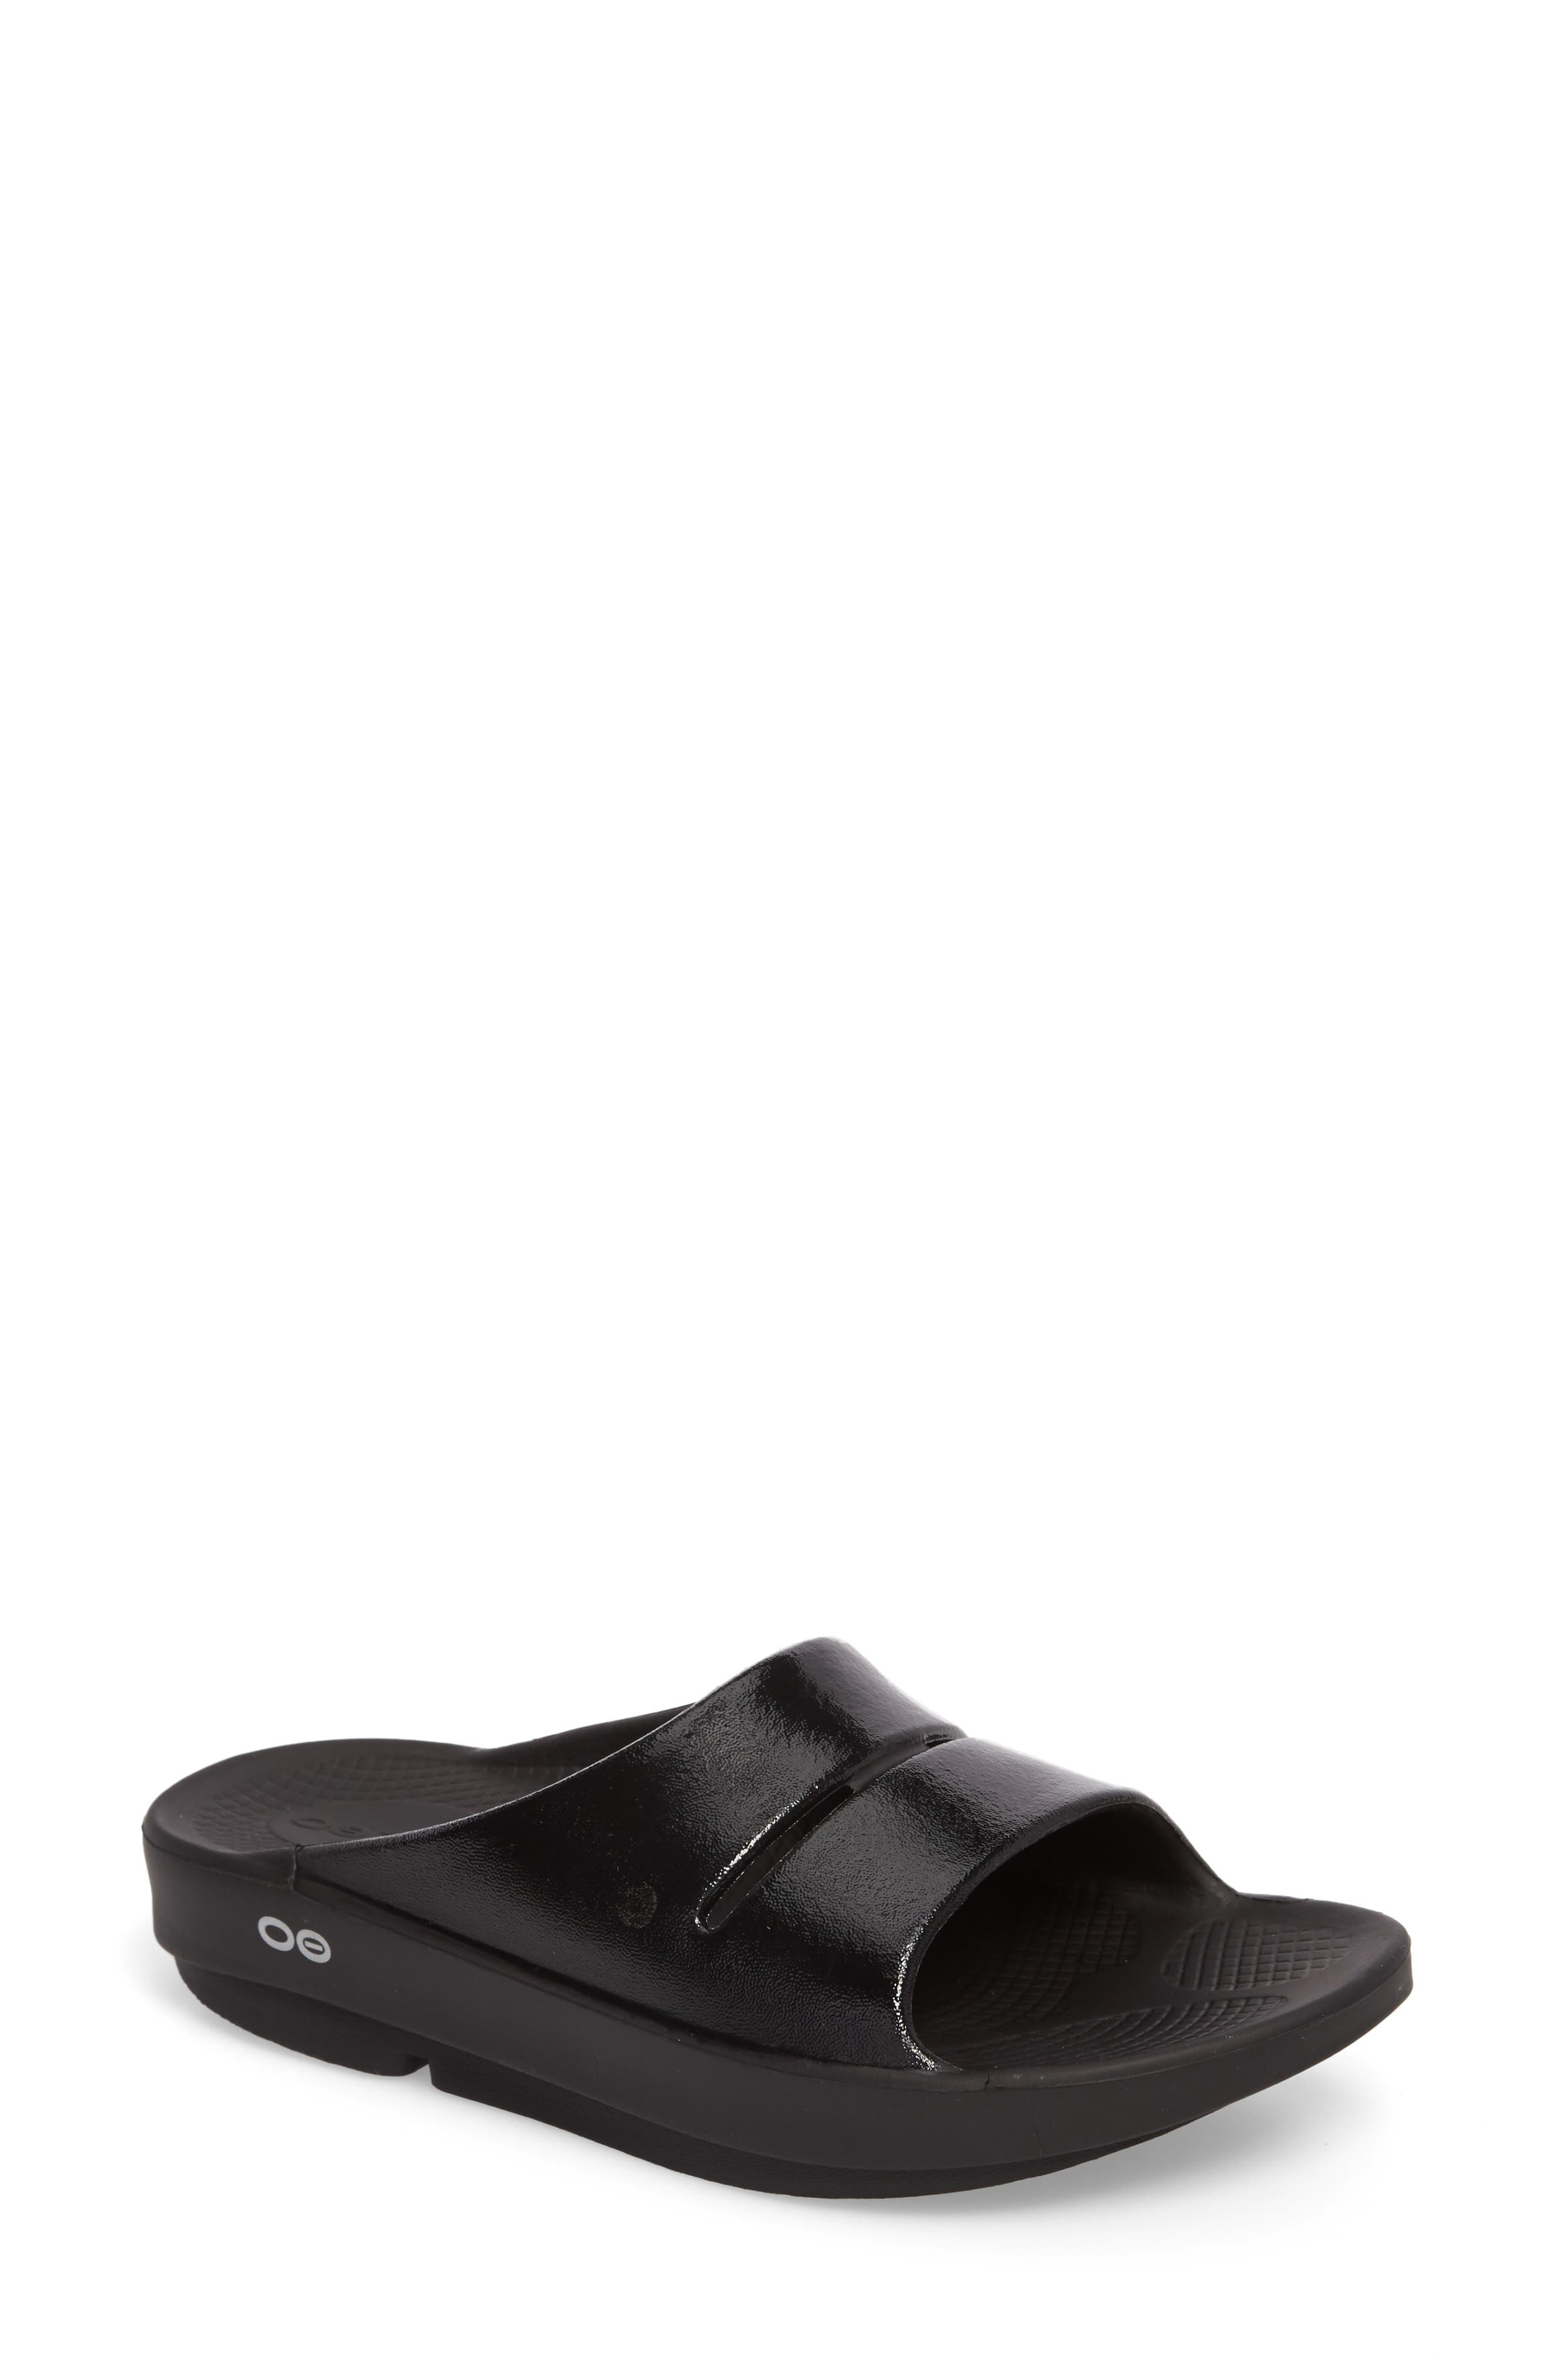 OOahh Luxe Slide Sandal,                         Main,                         color, 001